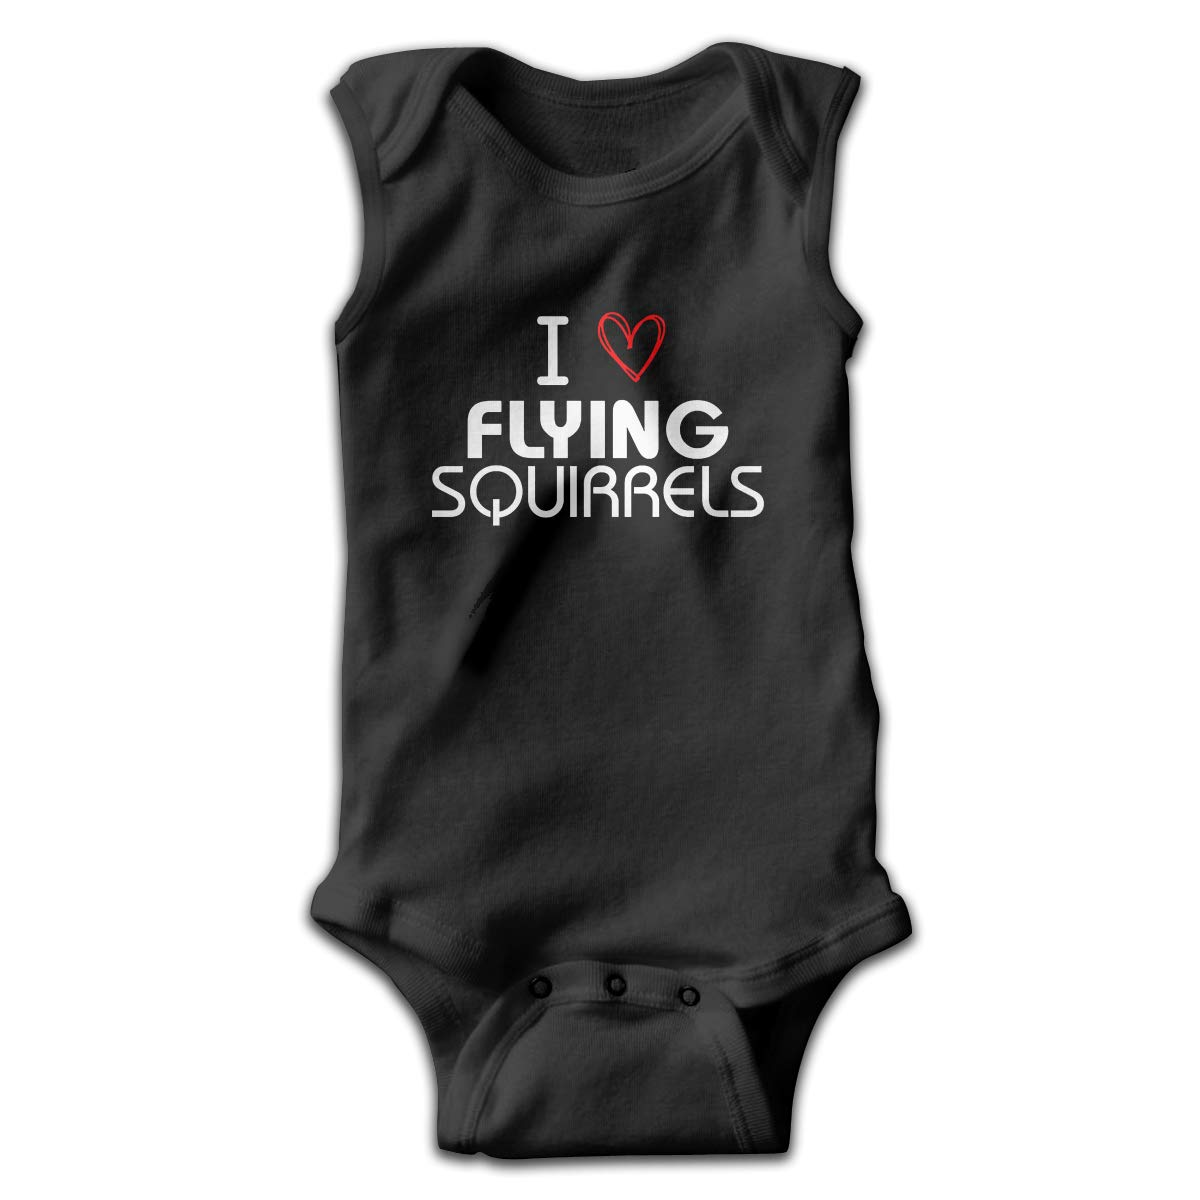 I Love Flying Newborn Baby No Sleeve Bodysuit Romper Infant Summer Clothing Black